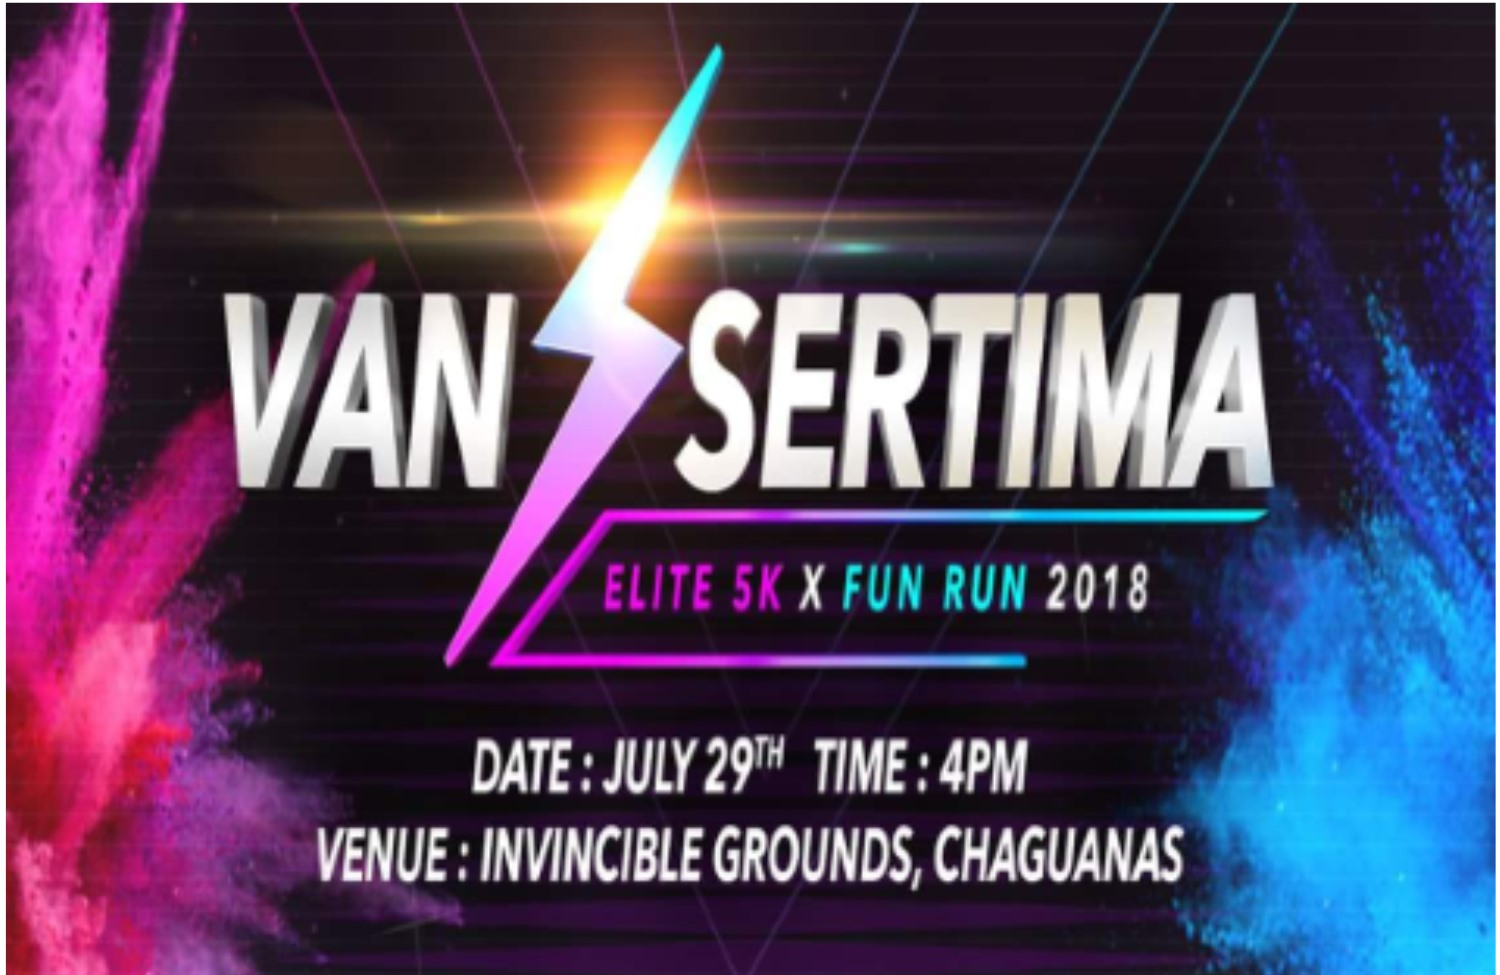 Van Sertima Elite 5k & Fun Run 2018